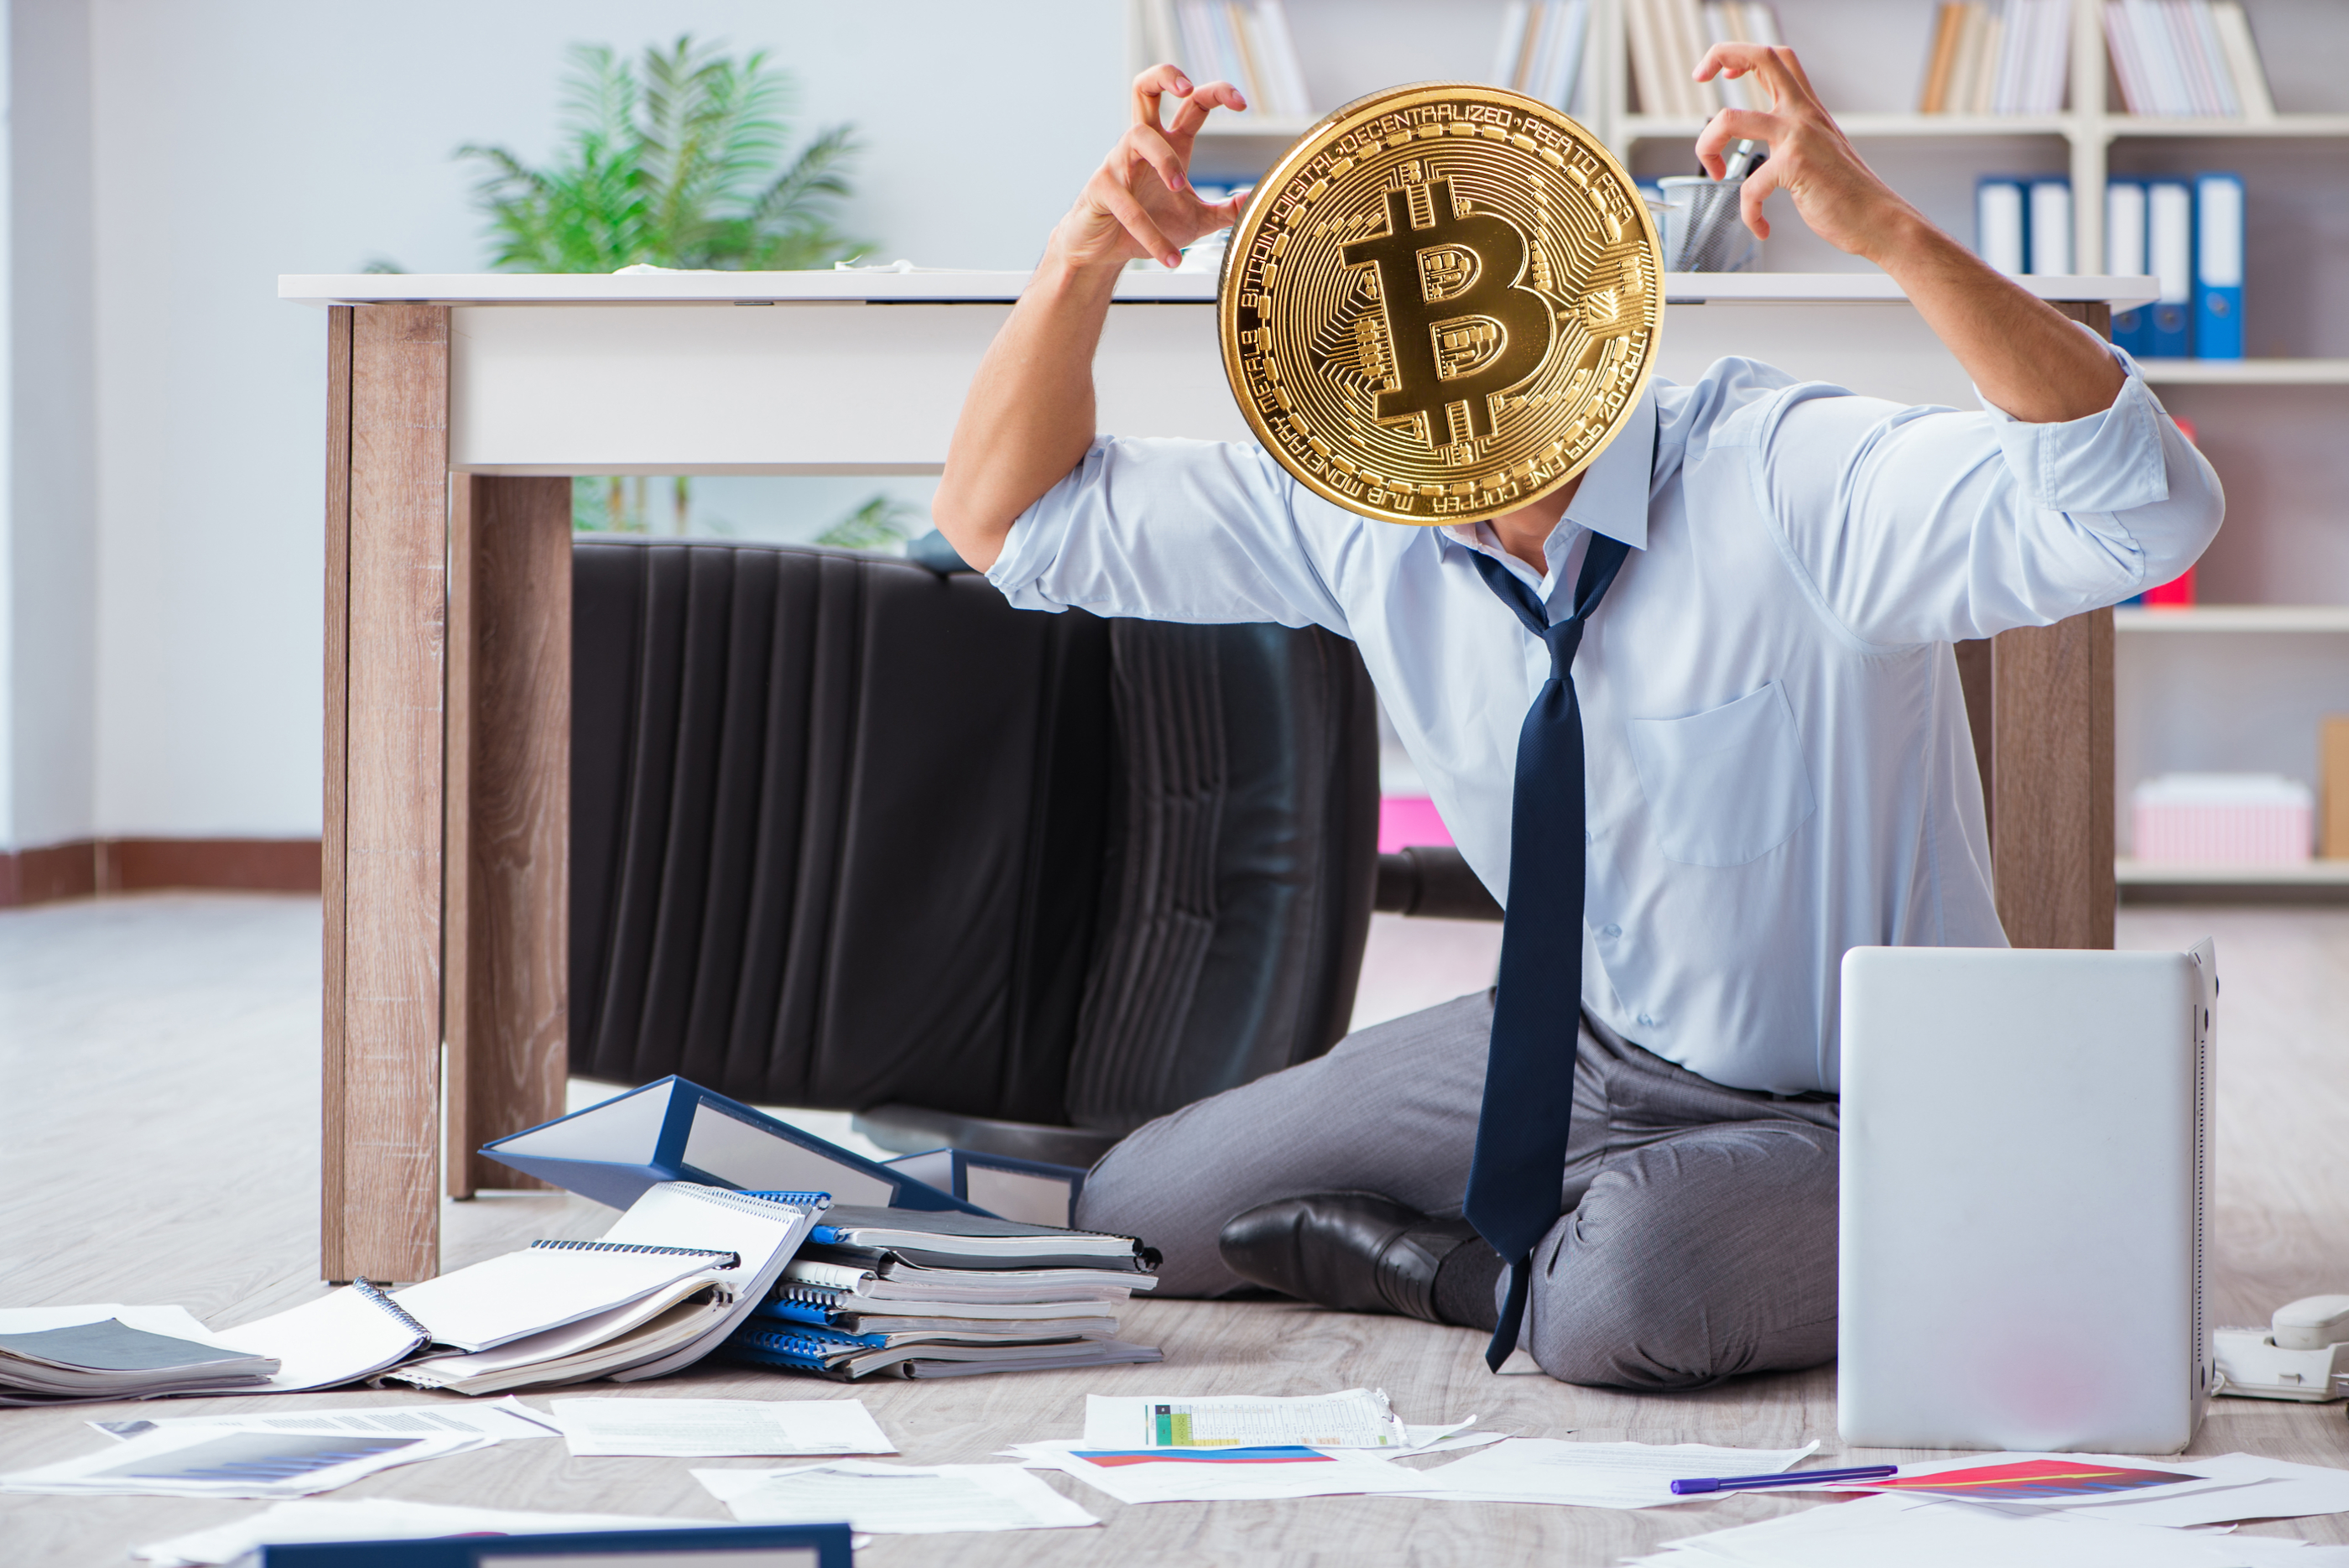 People Who Own Cryptocurrency Are Getting Slammed With More Taxes